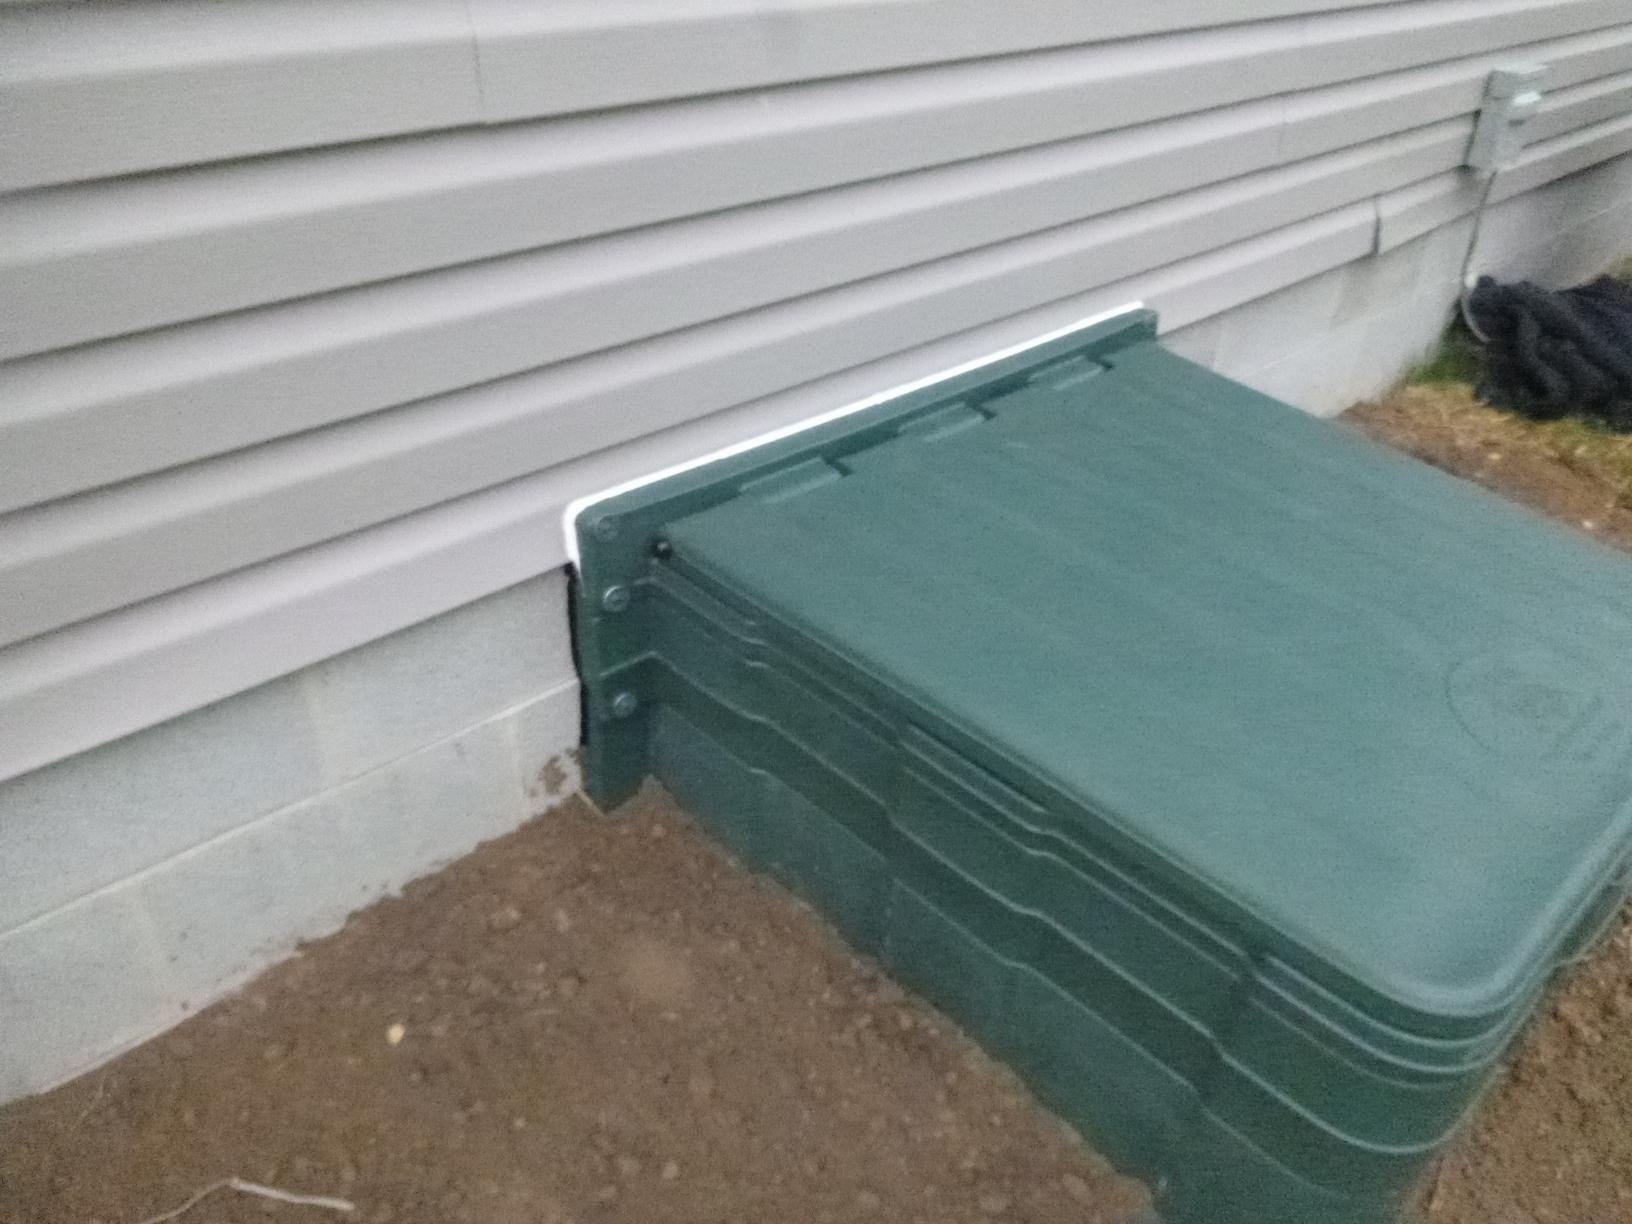 Reduce water from entering through crawlspace entrance in Felton, Delaware - After Photo